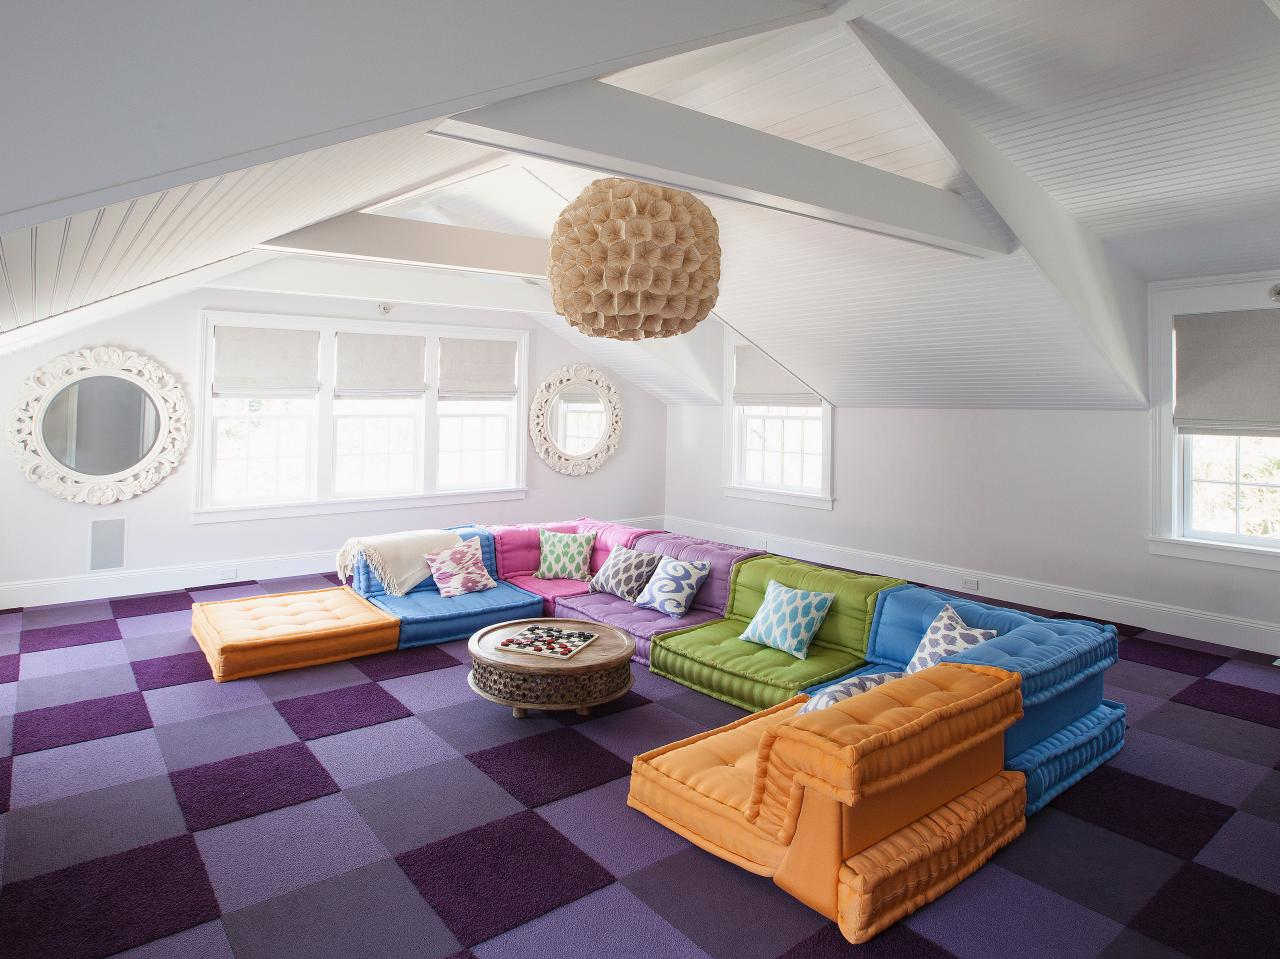 White attic living room with colorful carpet and furniture